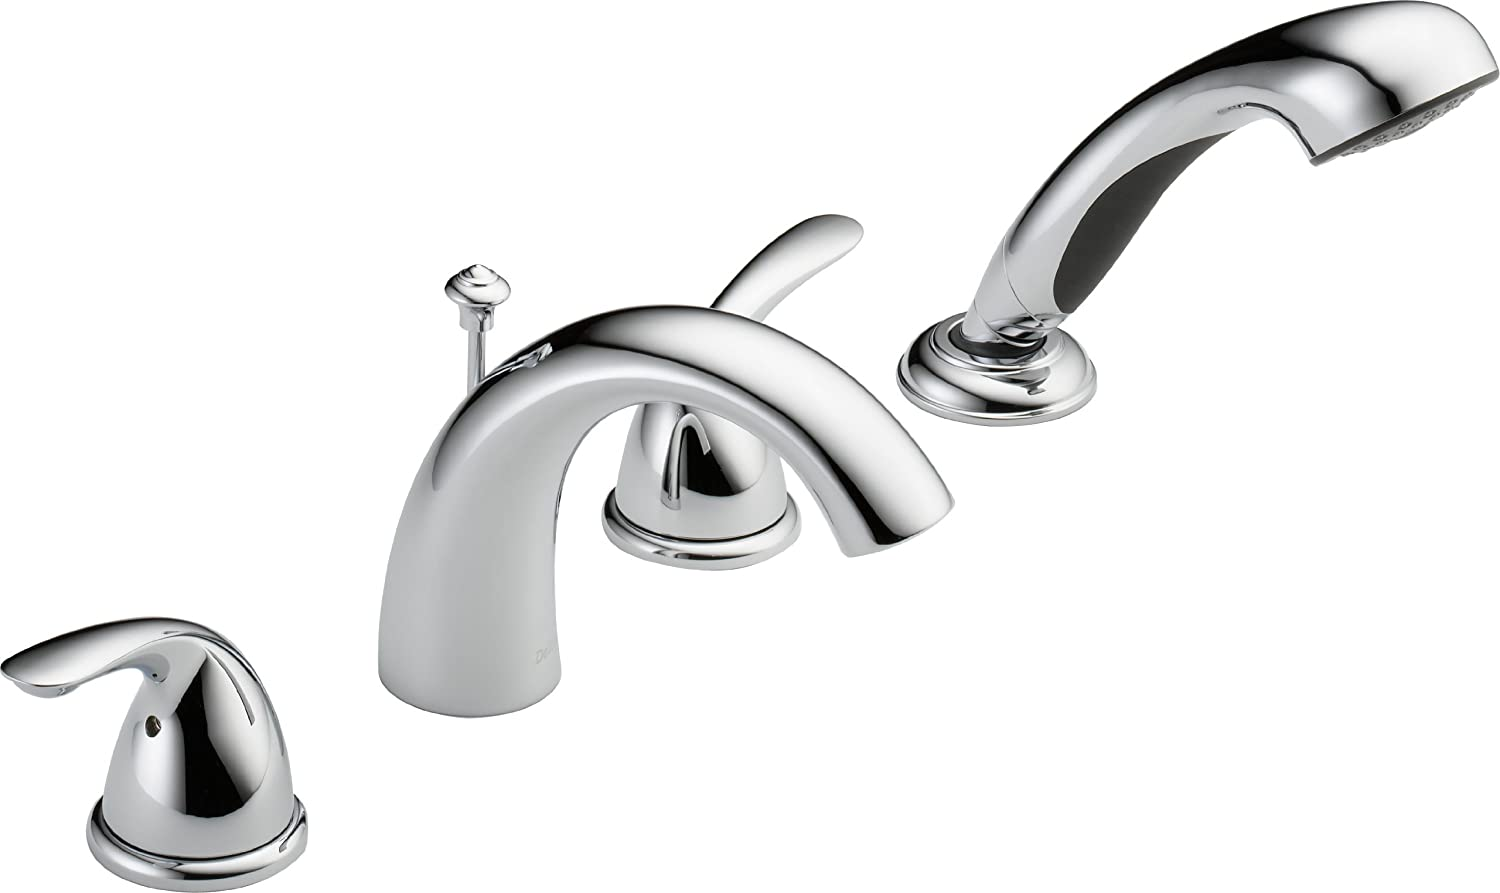 Delta Faucet T4705-25 Classic Roman Tub with Hand Shower Trim, Chrome well-wreapped